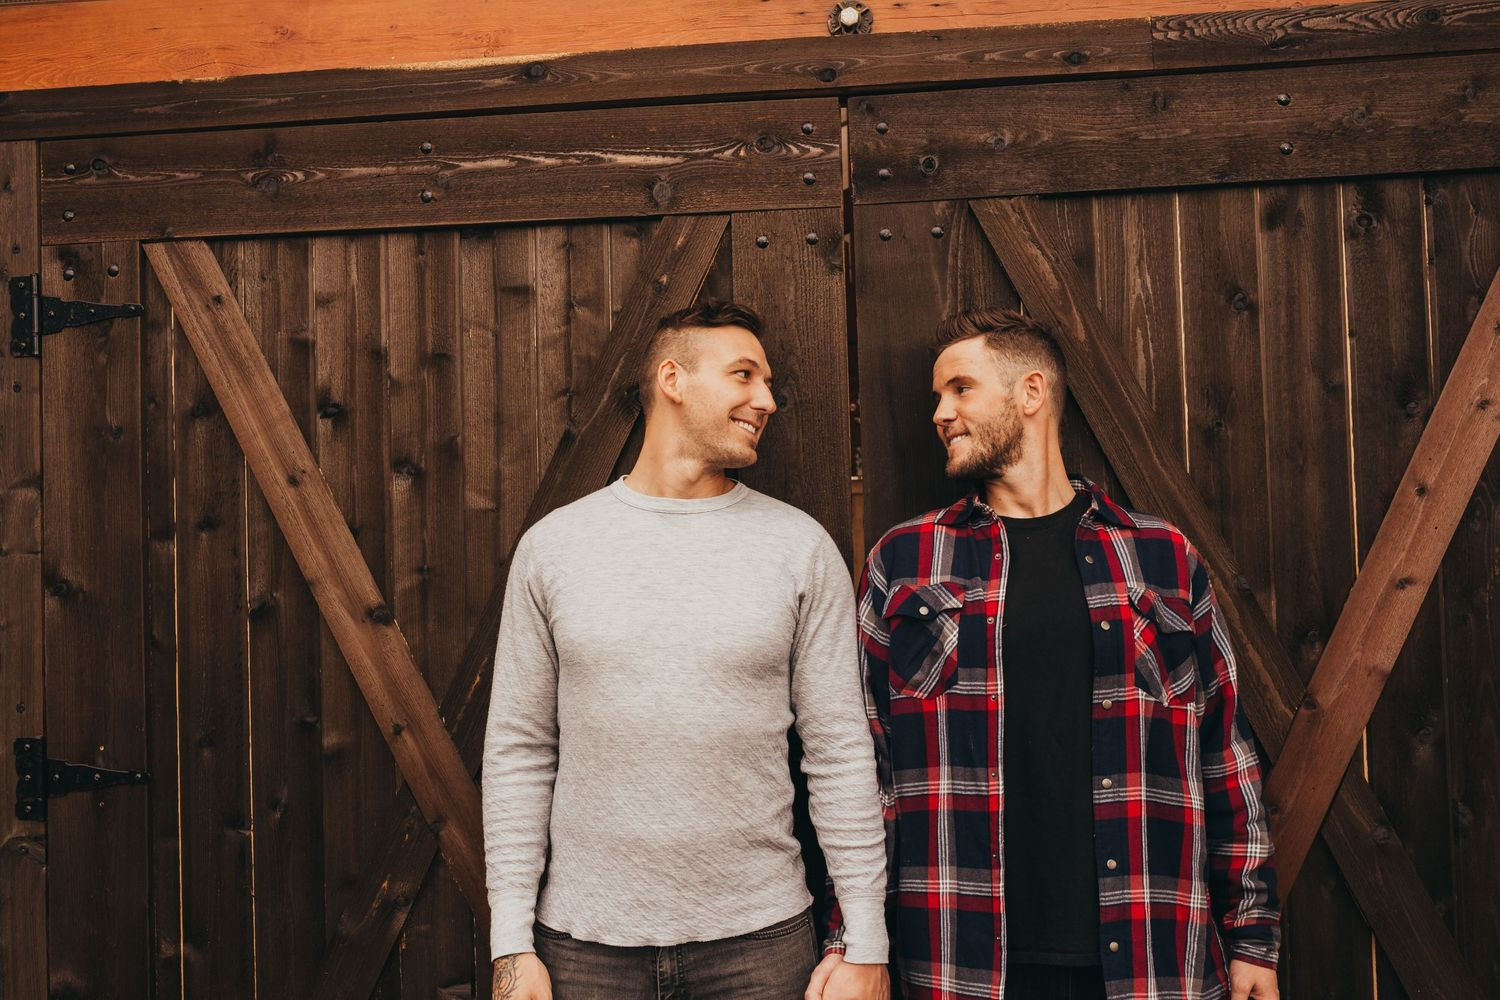 joey and Taylor engagement photos gay wedding two grooms Soulful Hues Photography